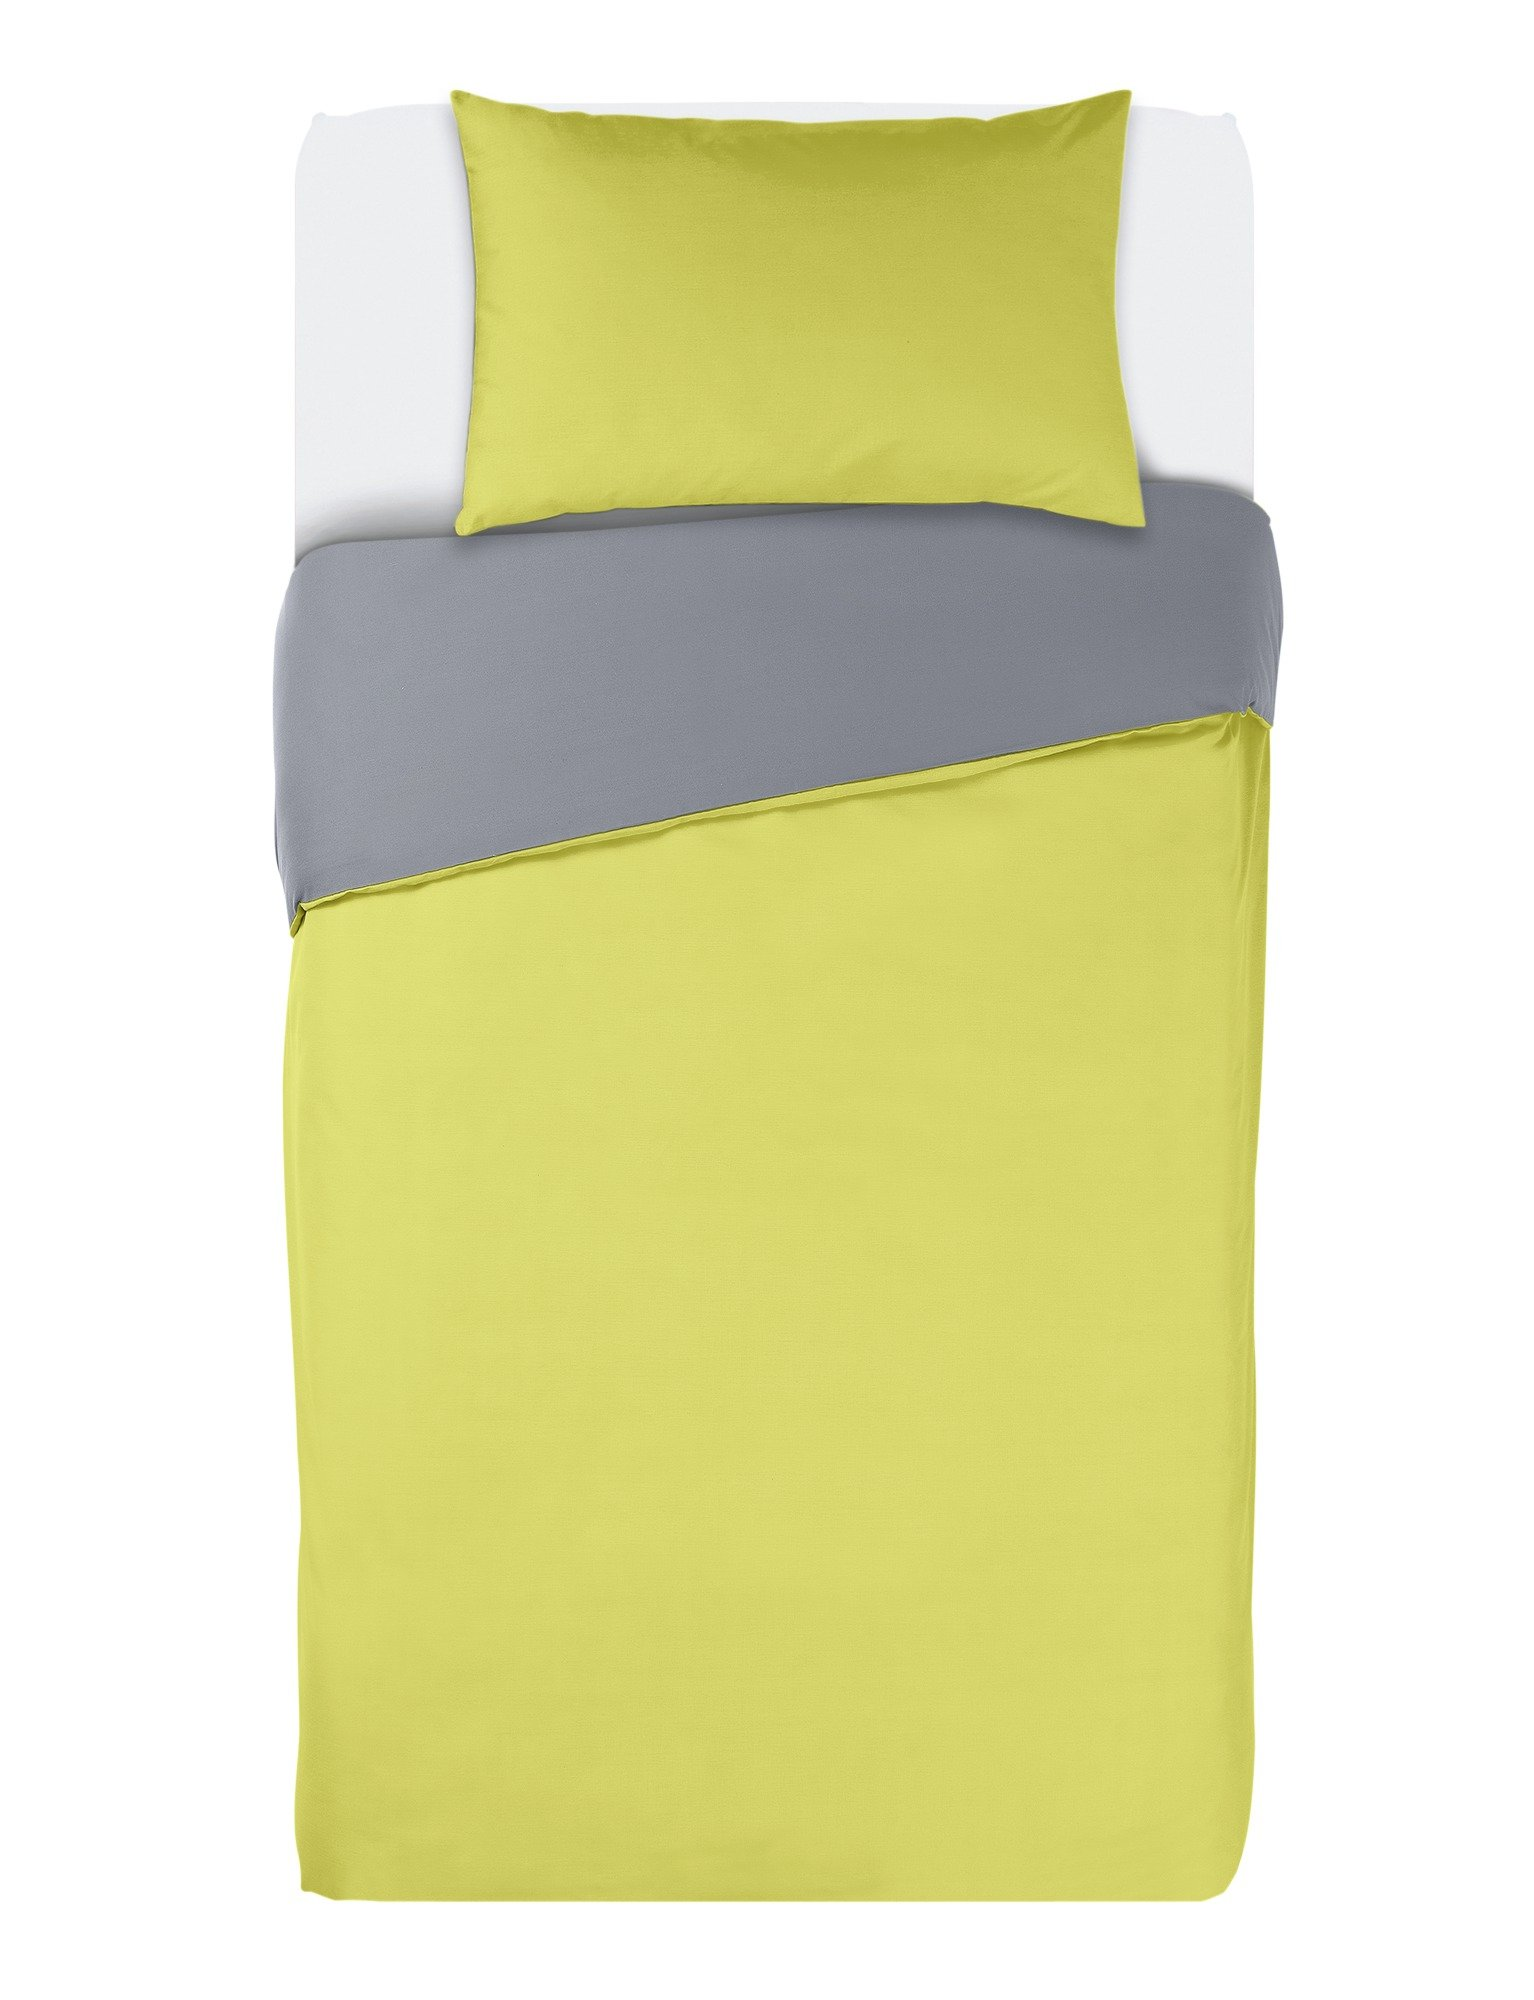 colourmatch flint grey/zest bedding set  single